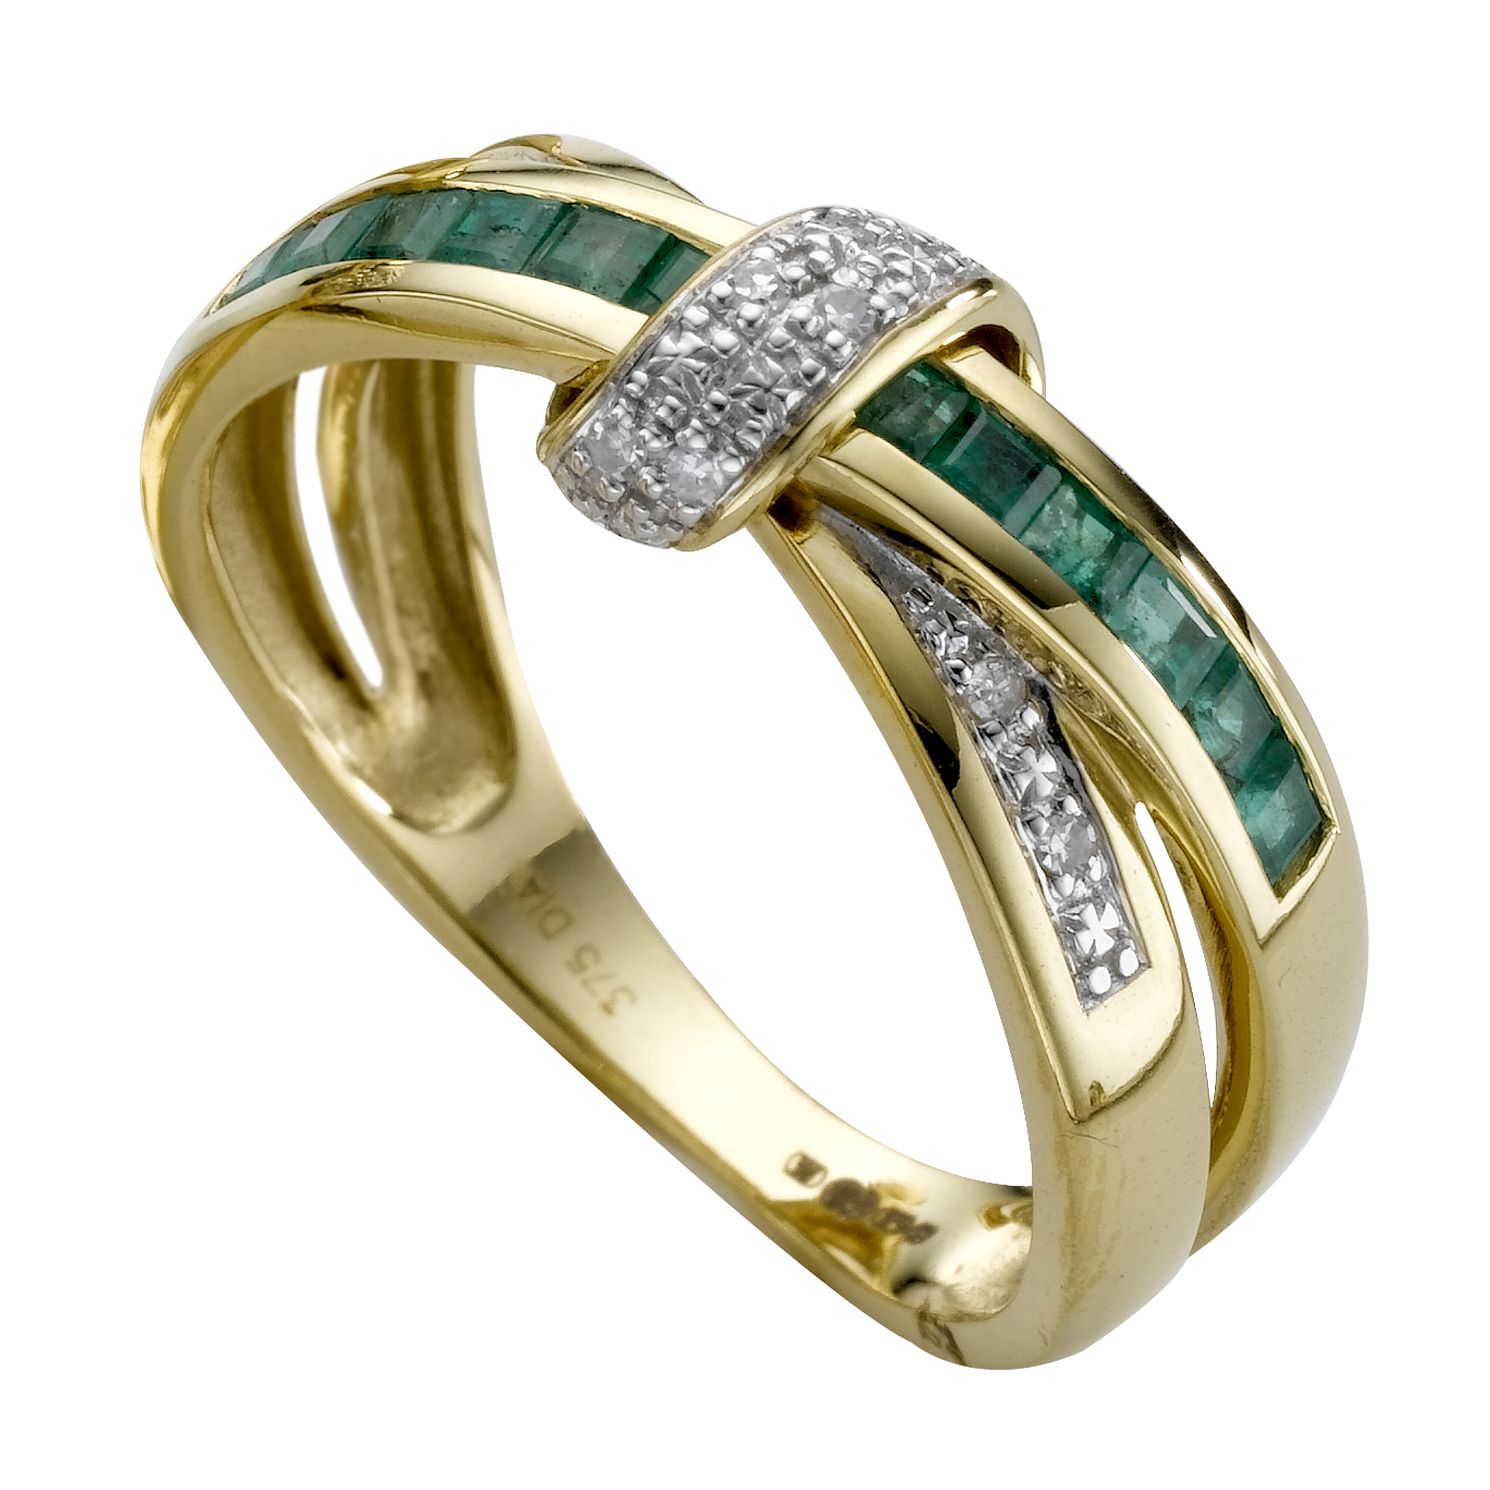 diamond all diamonds ring bands eternity band a emerald gold with white around furst thin french products france setting